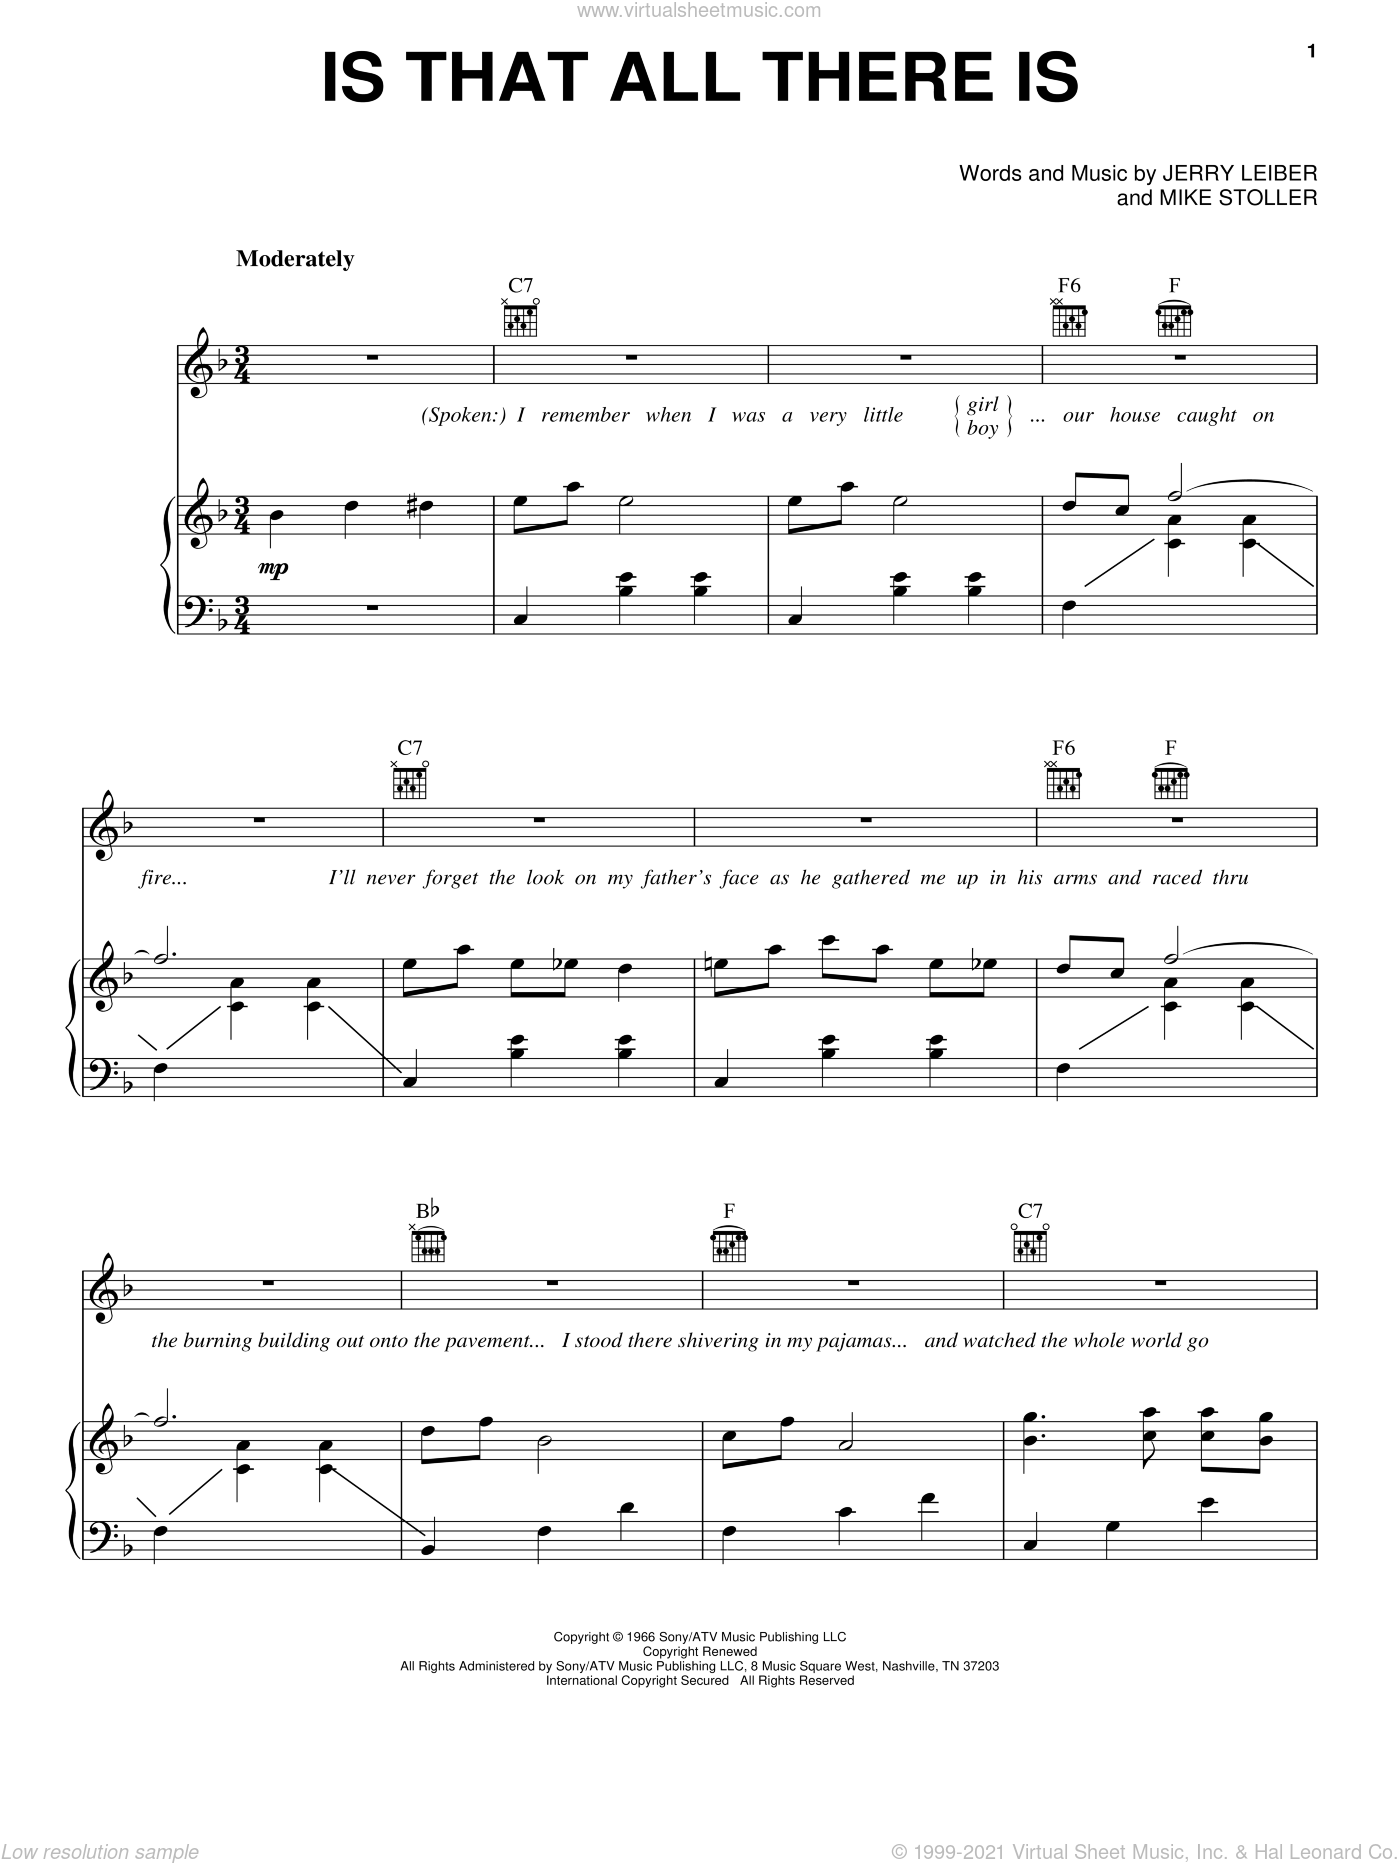 Is That All There Is sheet music for voice, piano or guitar by Peggy Lee, Leiber & Stoller, Jerry Leiber and Mike Stoller, intermediate skill level